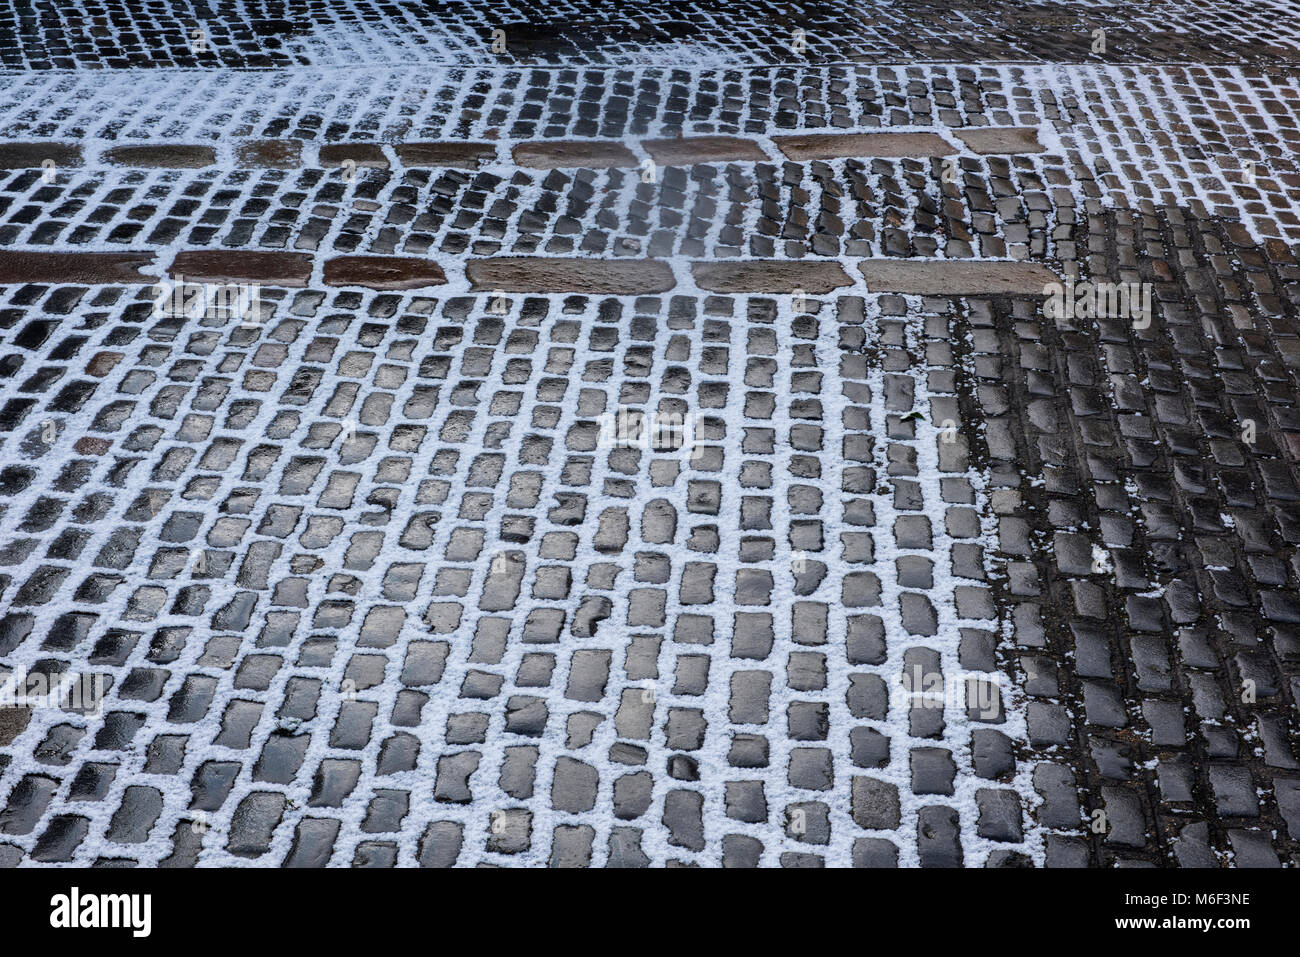 Snow covered cobbles on an icy road in central london. Icy roads in winter and slippery precautions. Cobbled streets - Stock Image